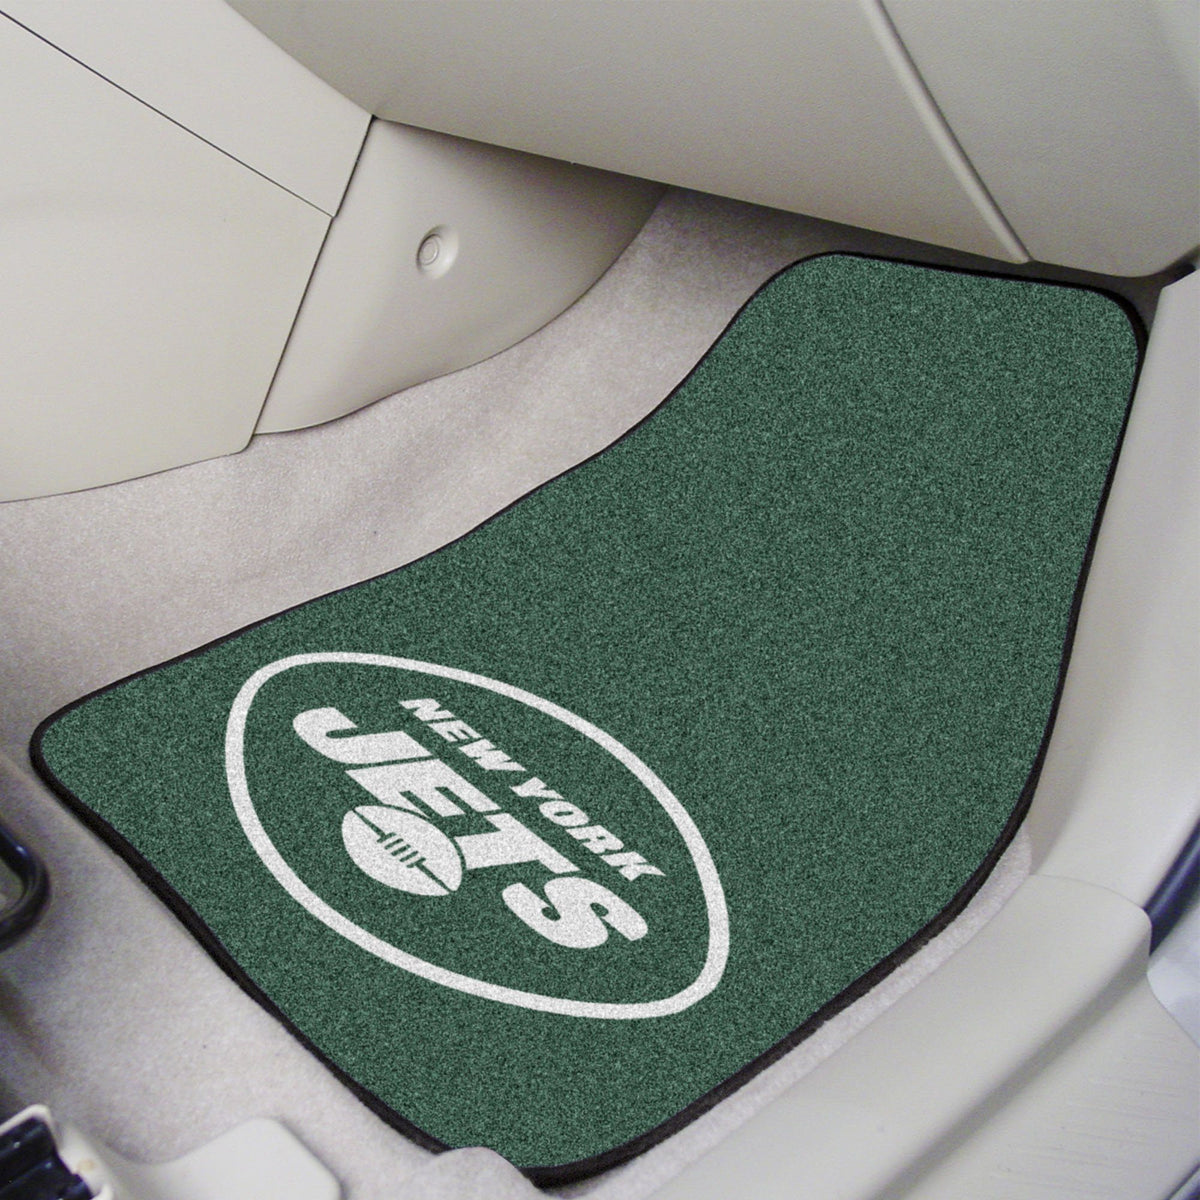 "NFL - 2-pc Carpet Car Mat Set, 17"" x 27"" NFL Mats, Front Car Mats, 2-pc Carpet Car Mat Set, NFL, Auto Fan Mats New York Jets"